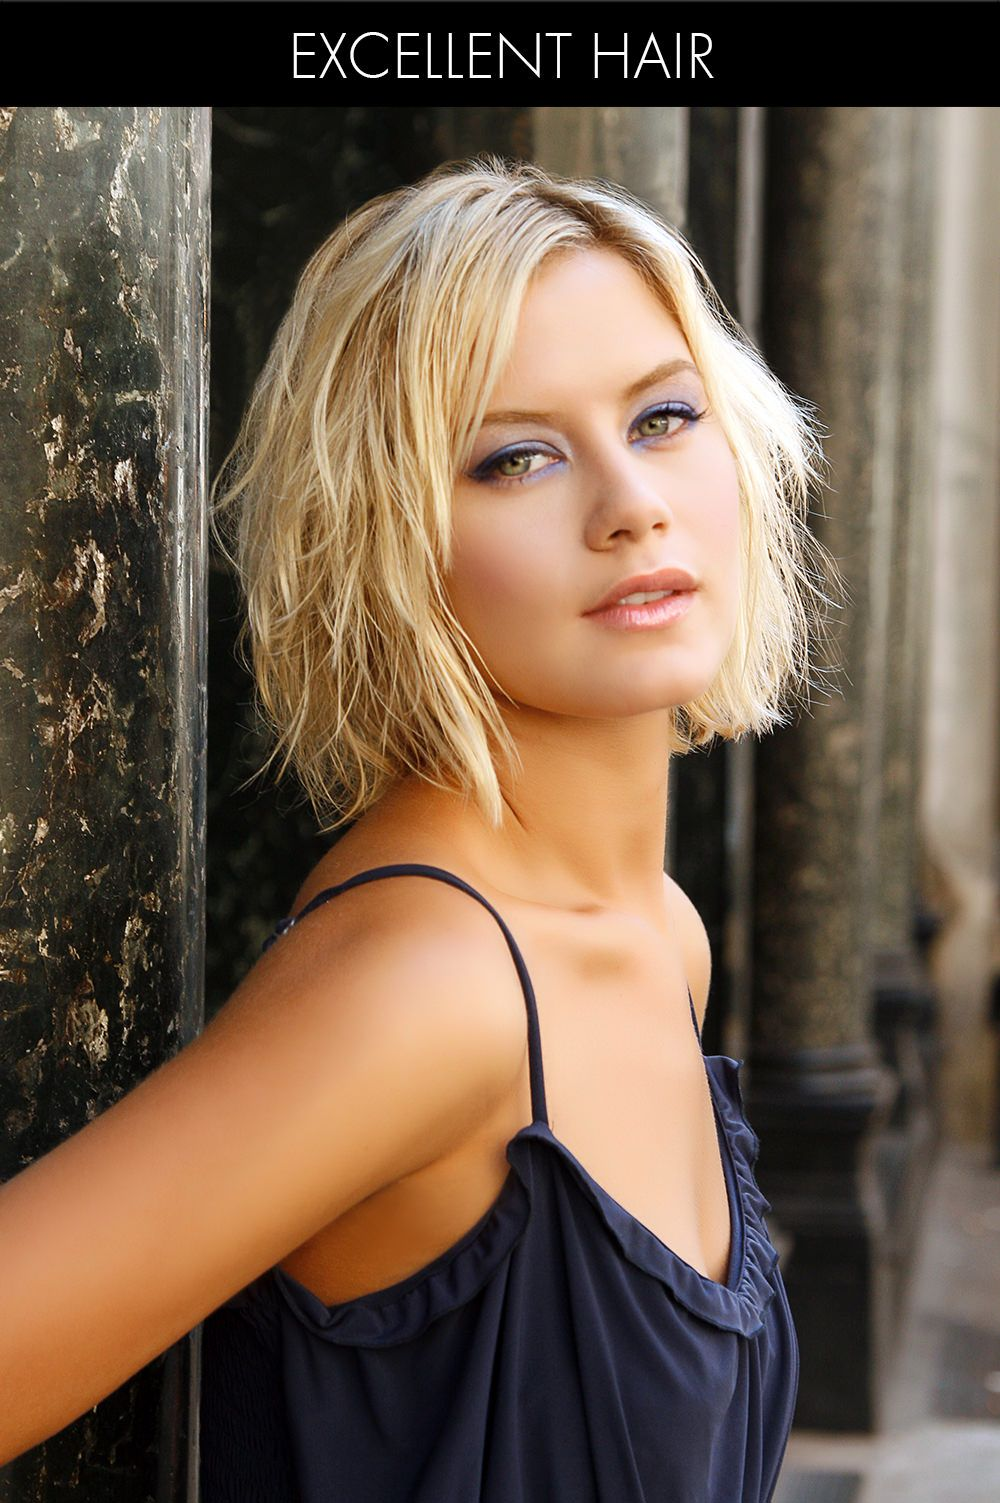 40 Best Short Hairstyles For Thin Hair To Look Cute Short Thin Hair Short Hairstyles Fine Thin Straight Hair